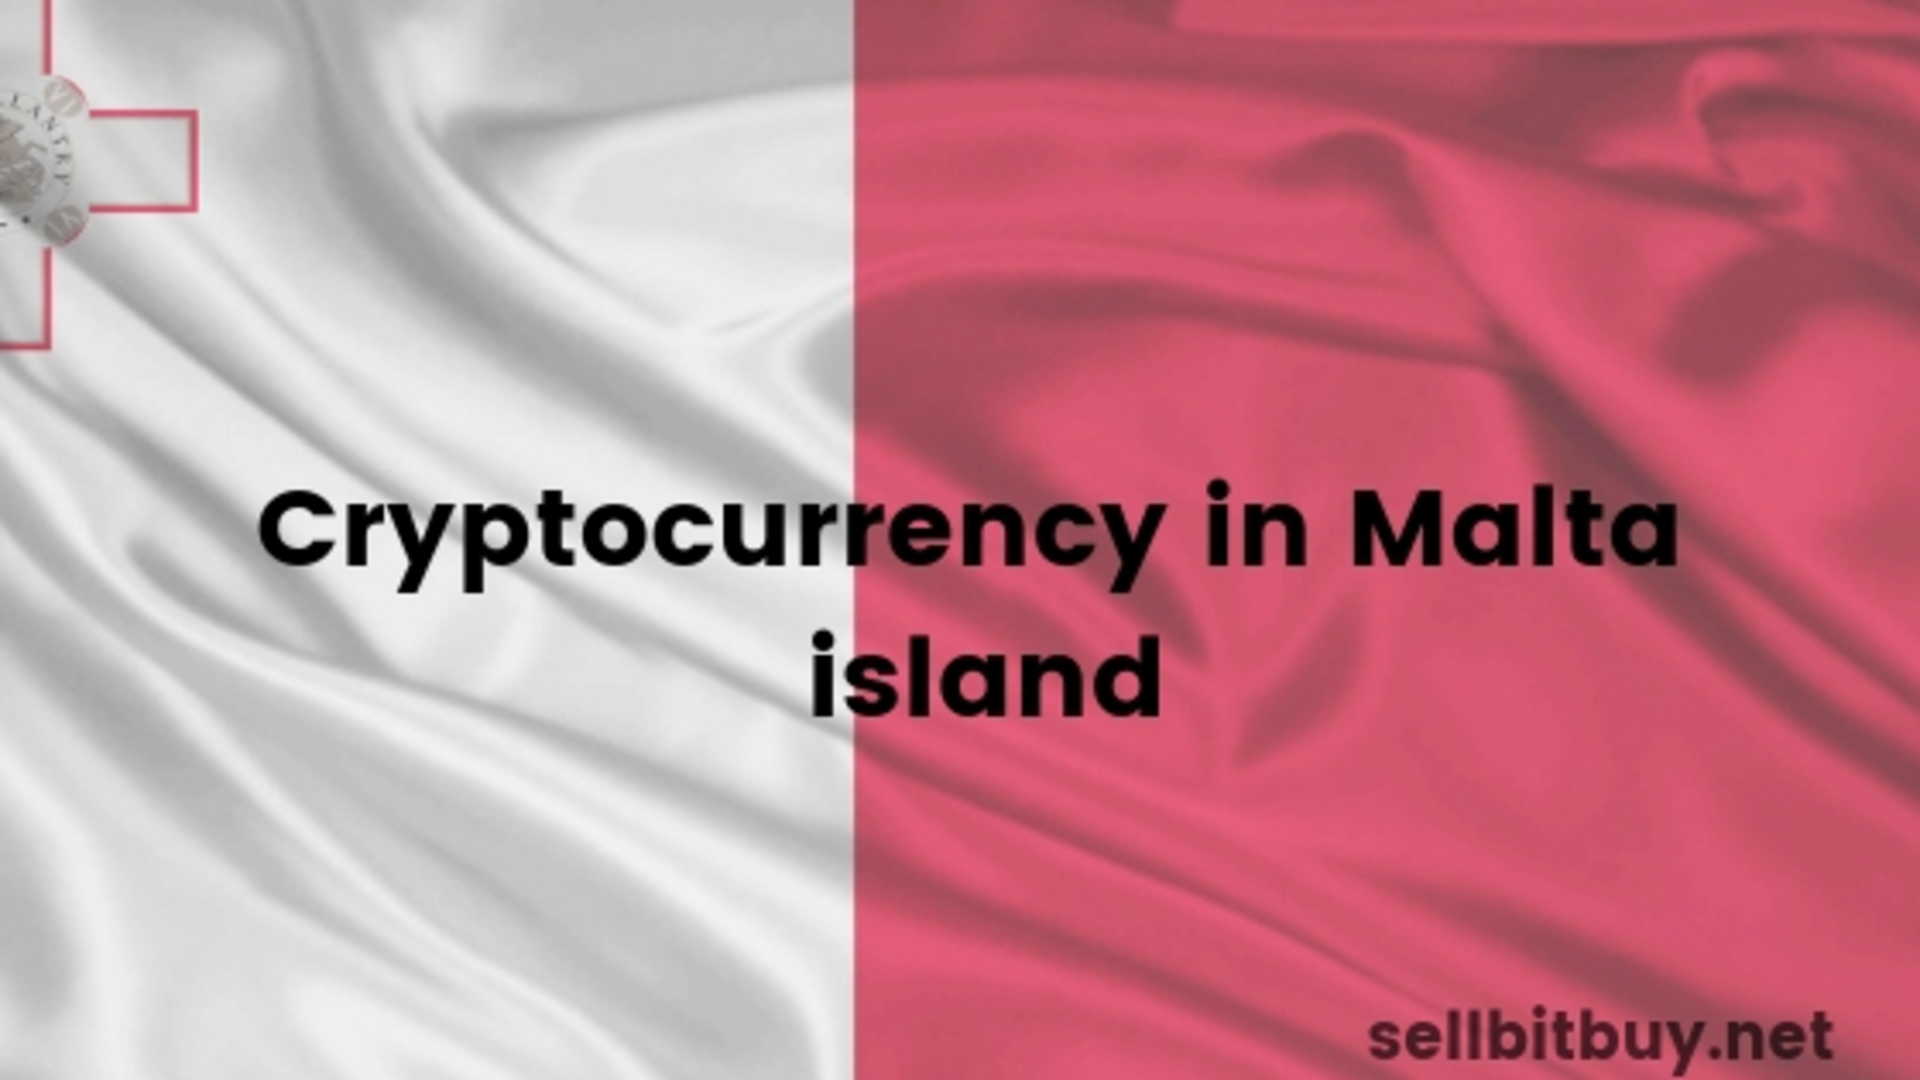 Cryptocurrency in Malta island image